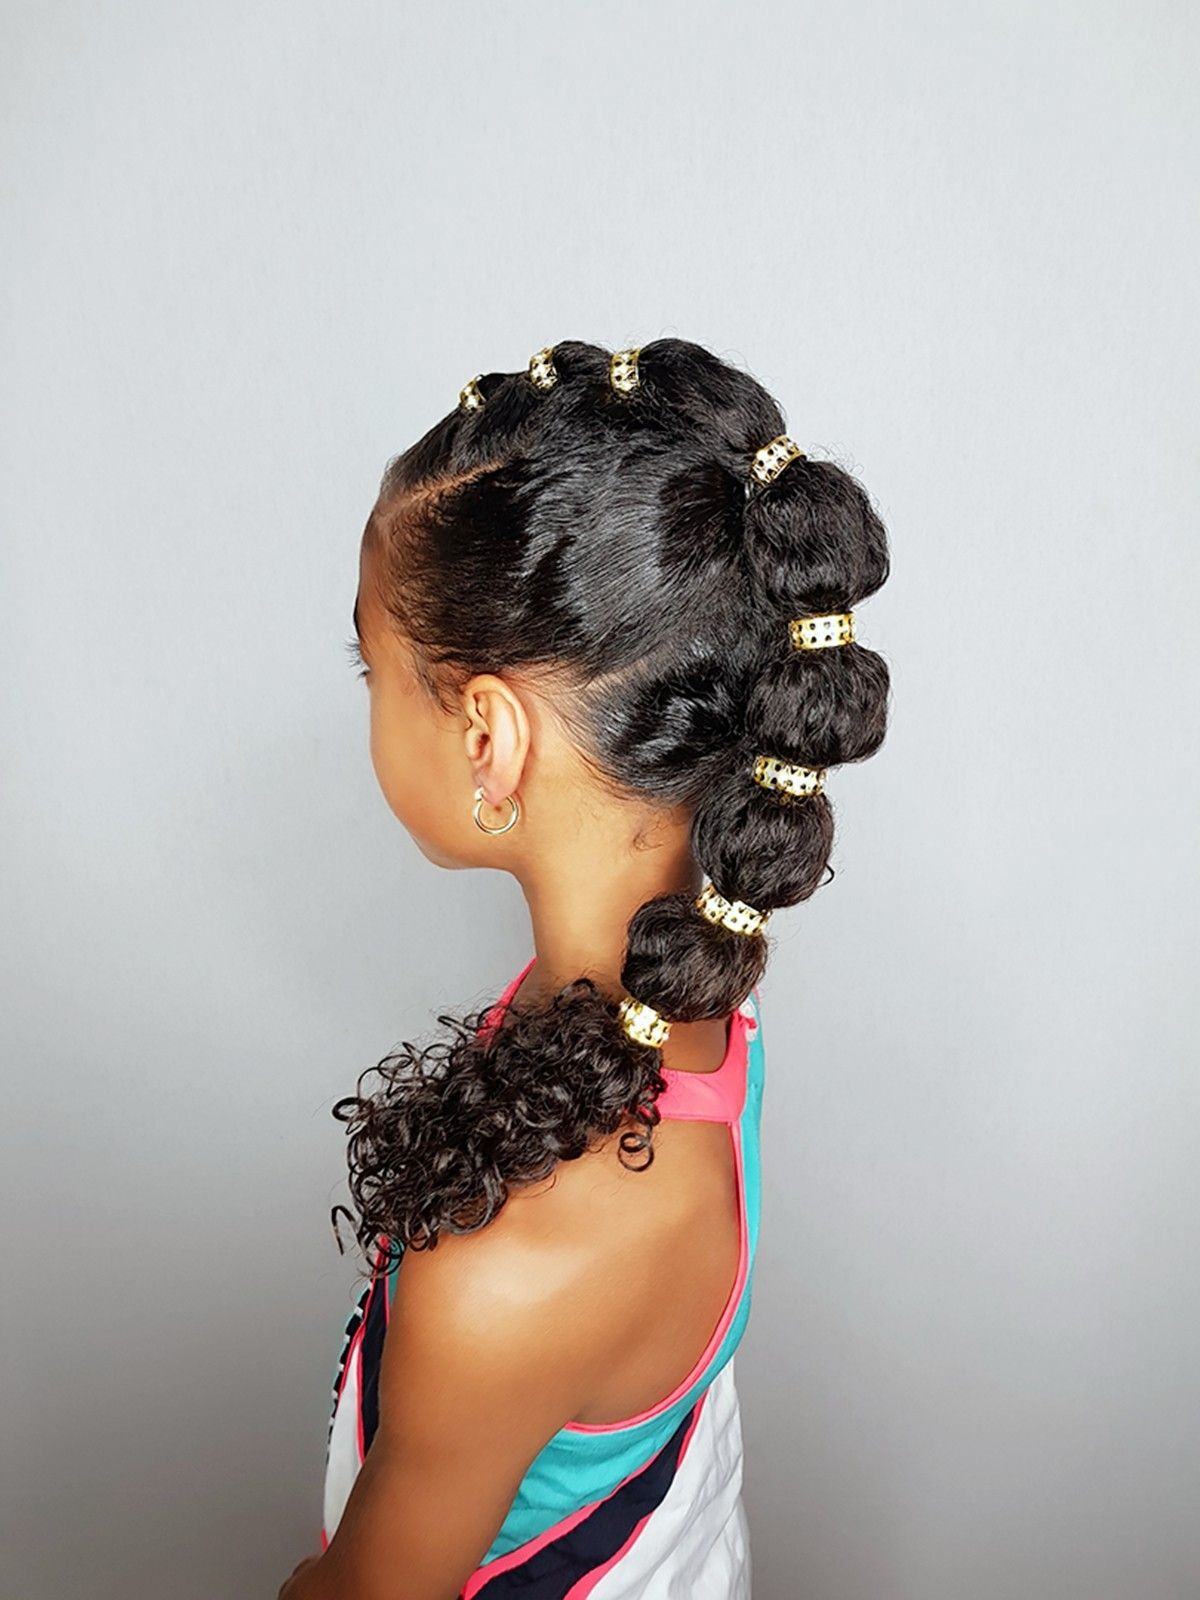 Braided Hairstyles Prom Braided Hairstyles African American Hair Braided Hairstyles On Black In 2020 Natural Hair Styles Kids Curly Hairstyles Mixed Girl Hairstyles